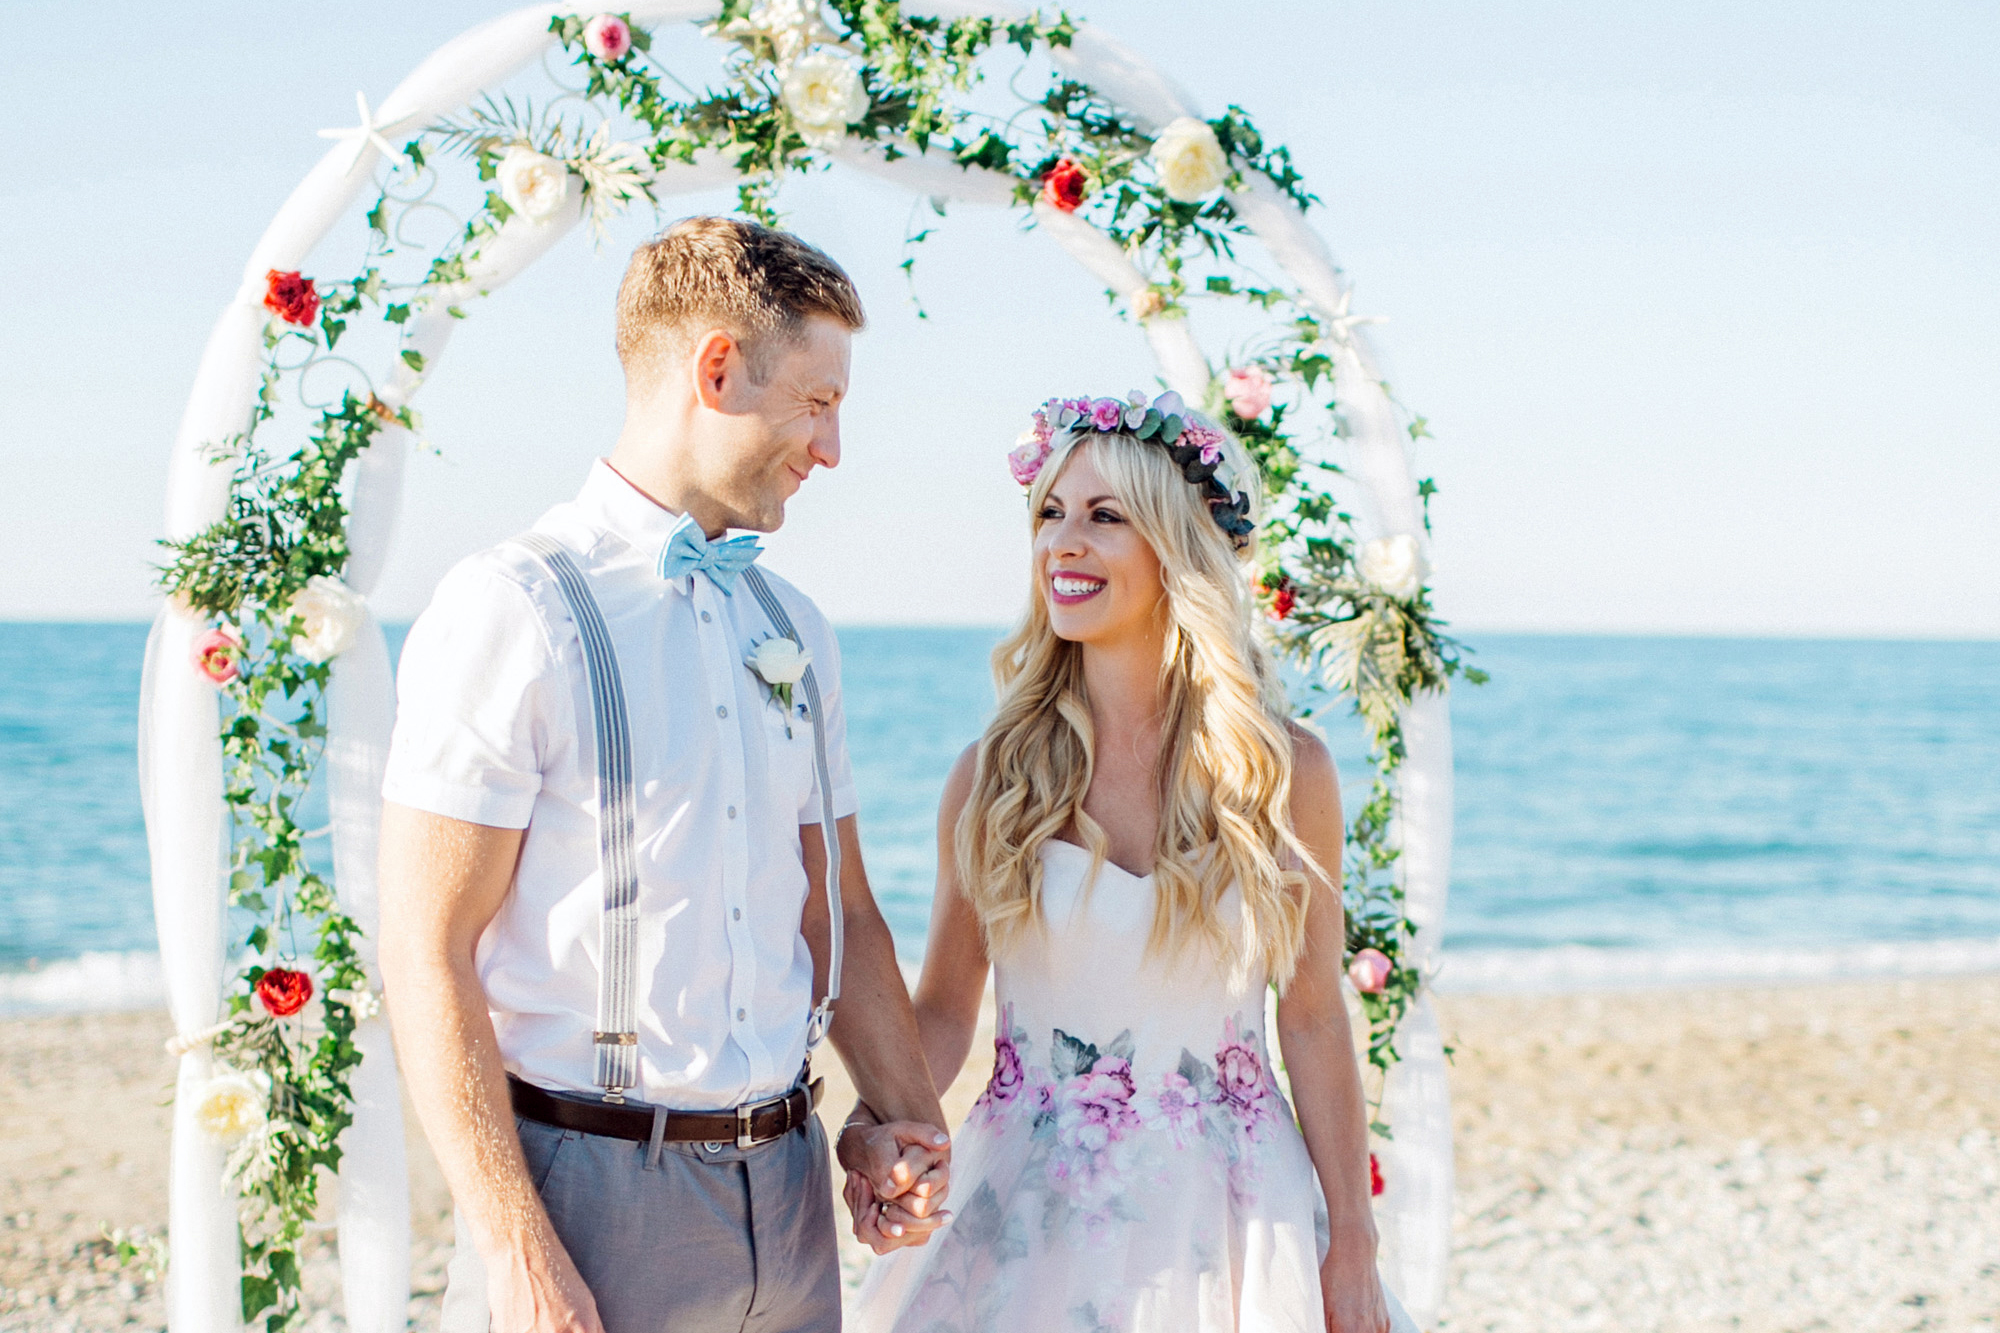 A Floral Sassi Holford Dress for Peach & Pastel Beach Wedding in Crete